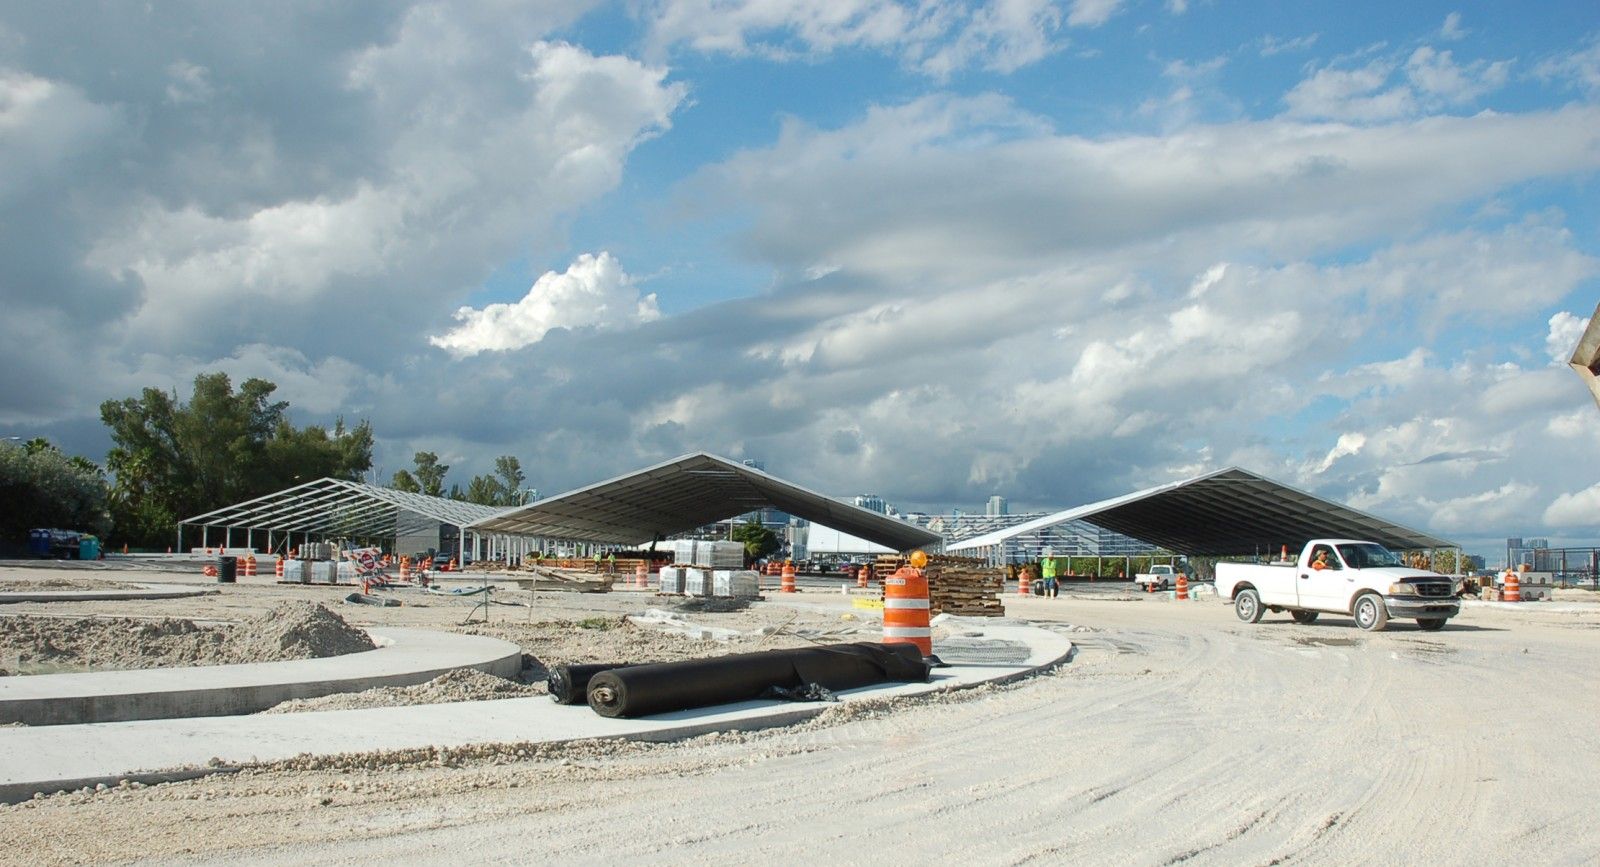 Workers are on site at the Miami Marine Stadium Park for the Miami International Boat Show on Key Biscayne. PHOTO/DORIE COX